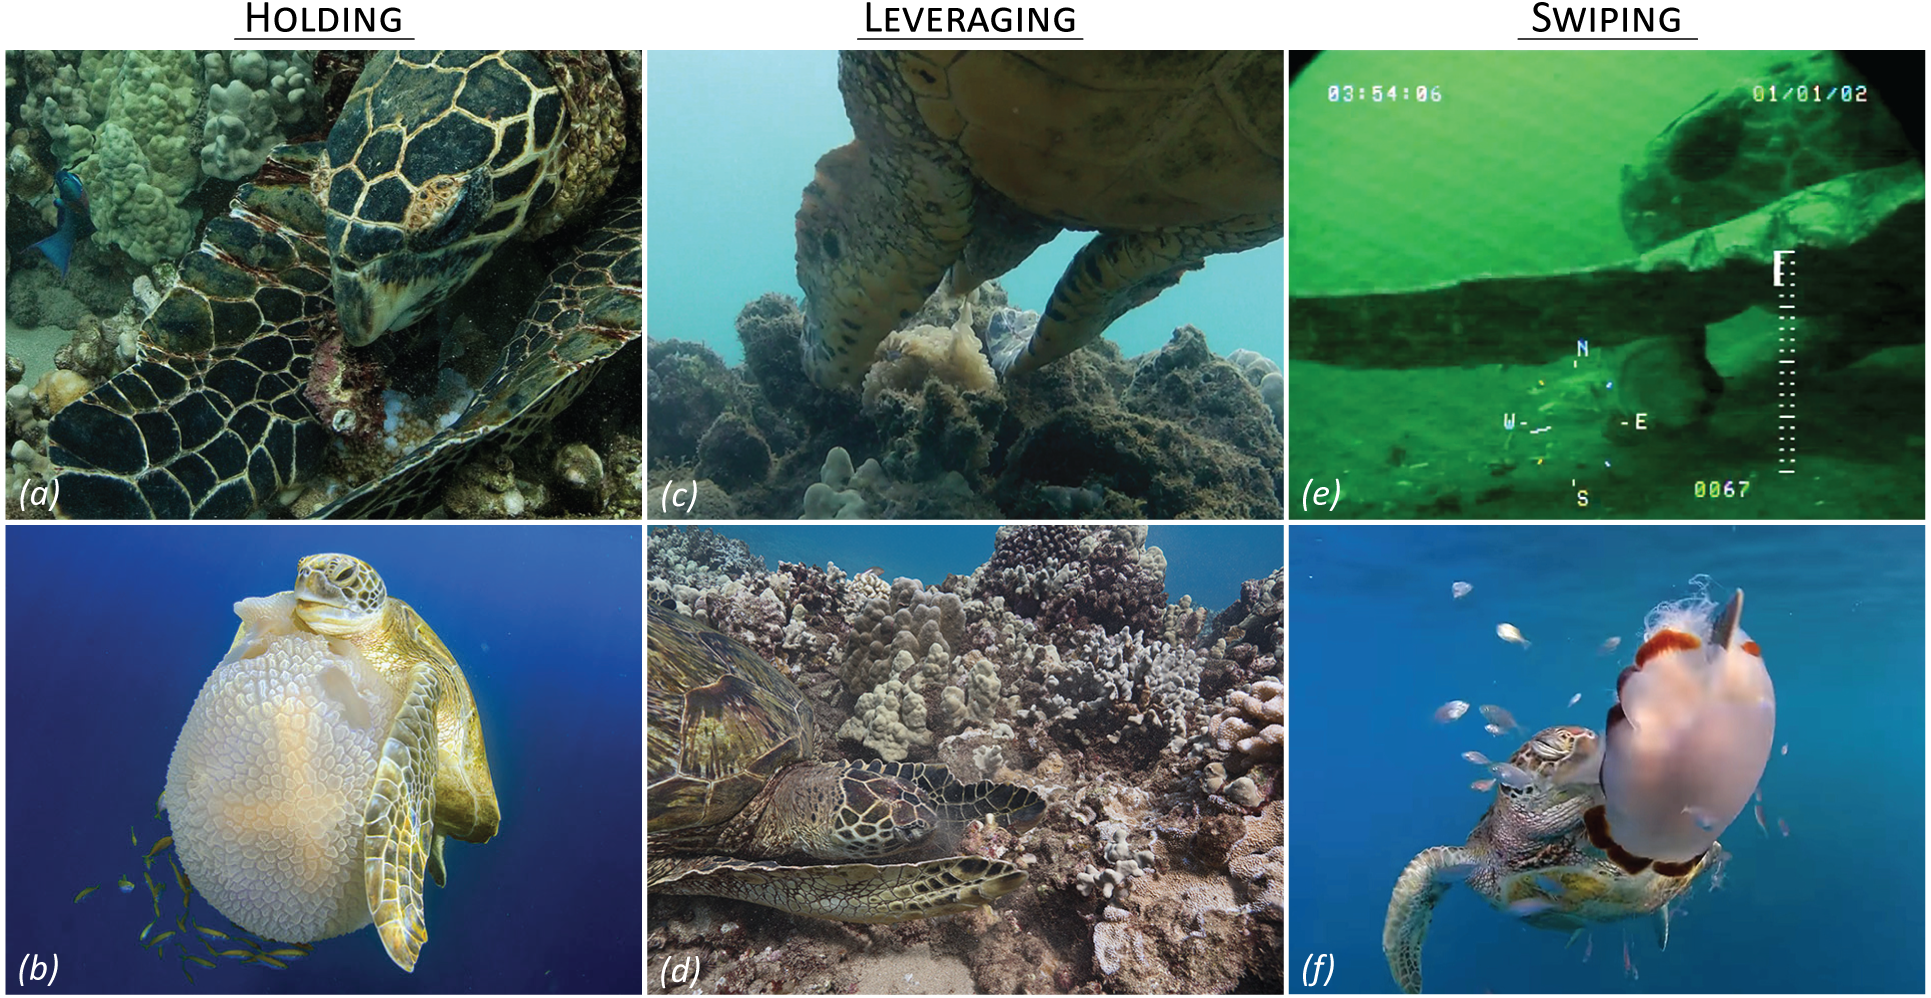 Limb-use by foraging marine turtles, an evolutionary perspective [PeerJ]